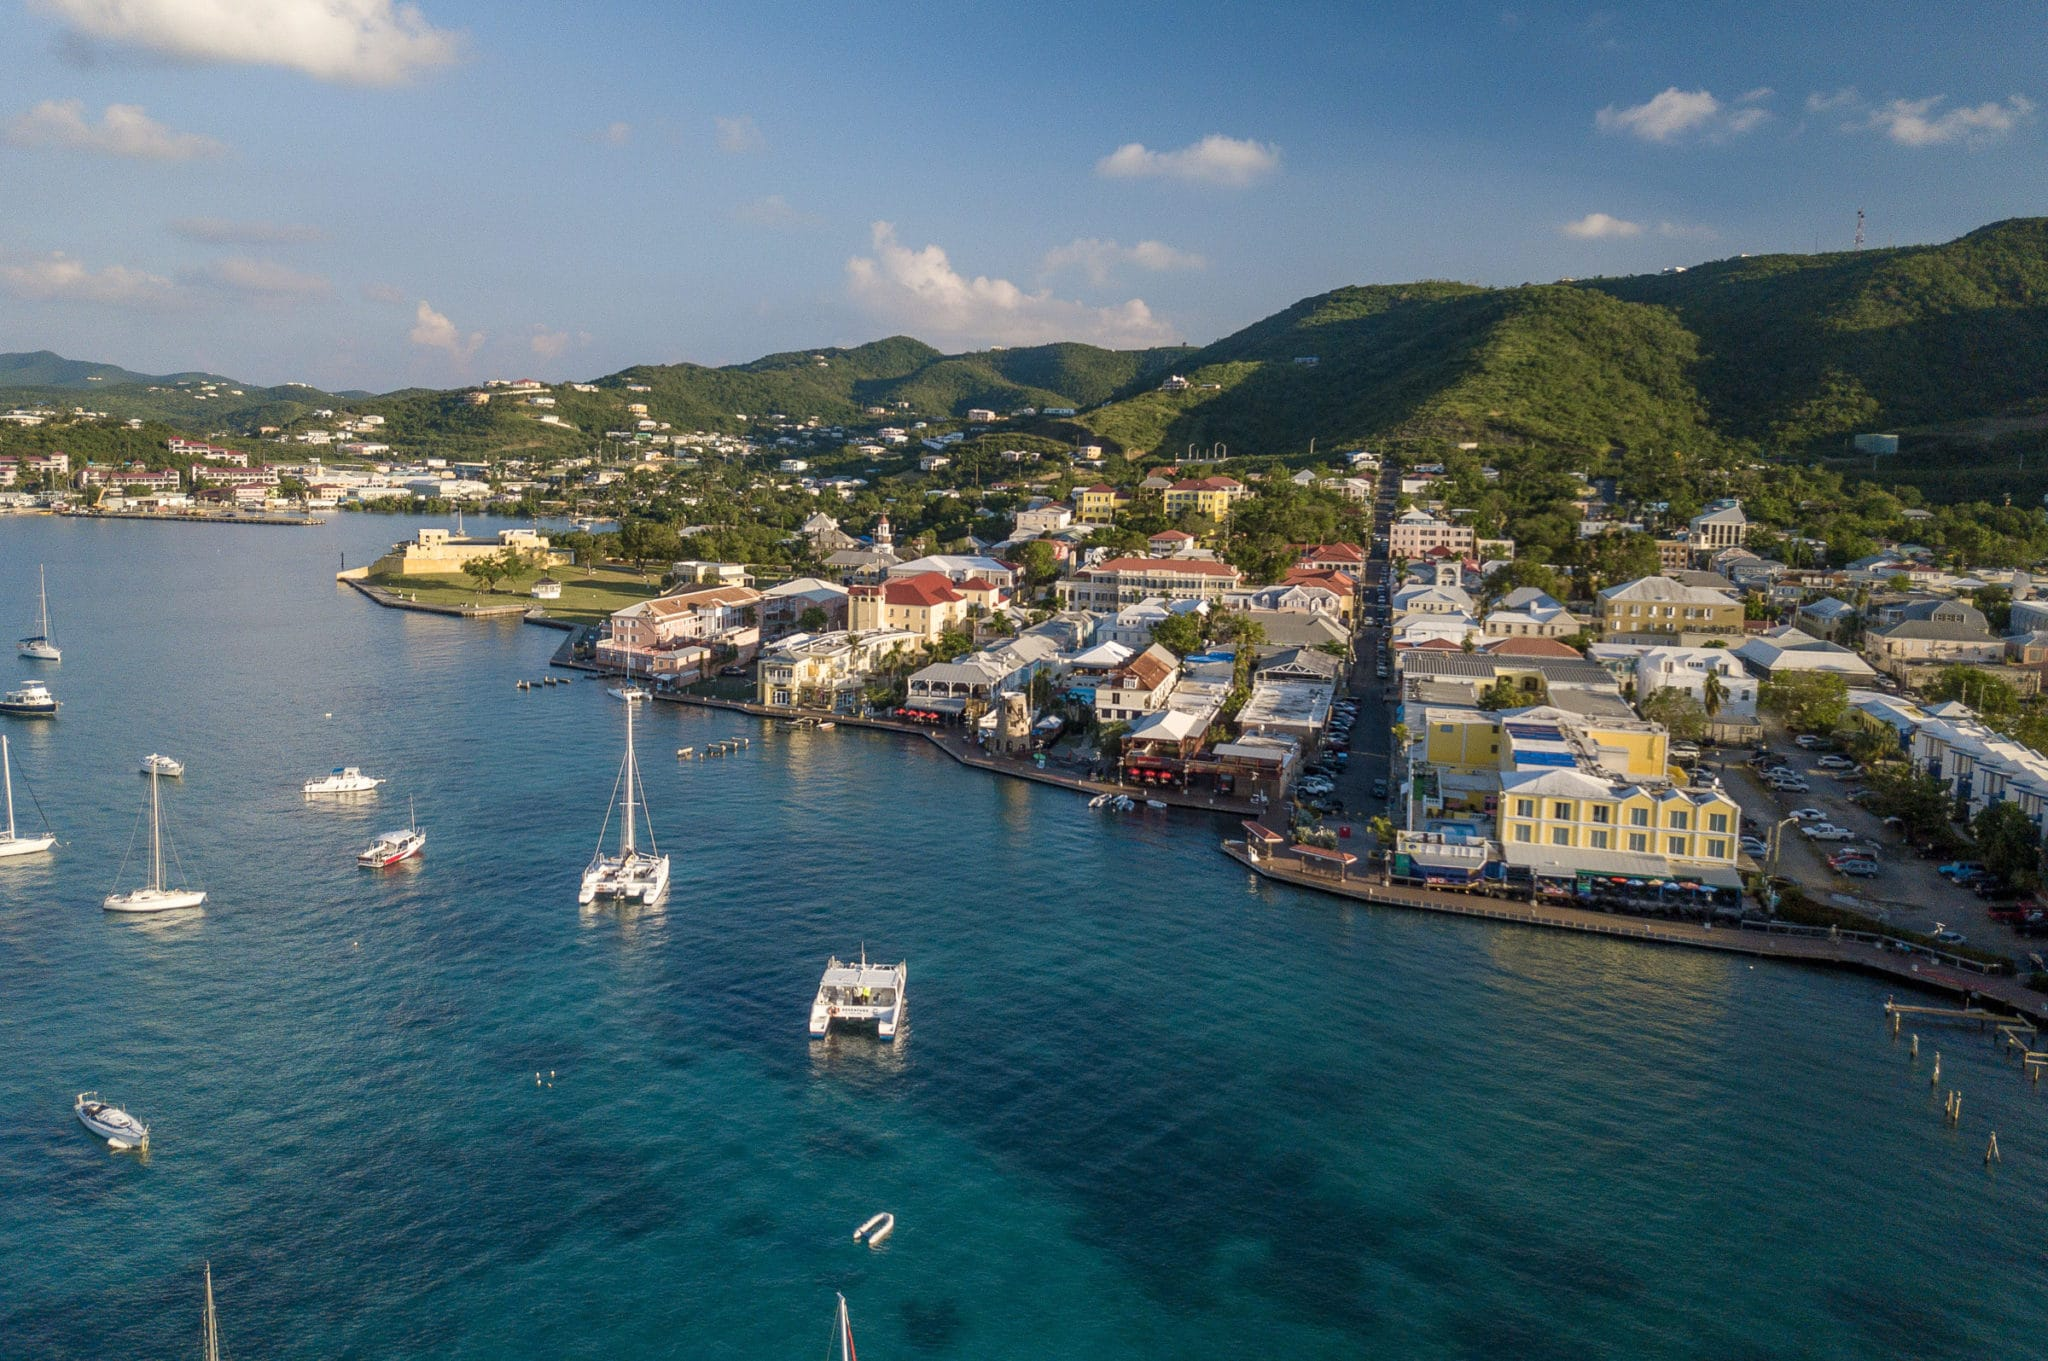 Up Next: Our Home, St. Croix, U.S. Virgin Islands